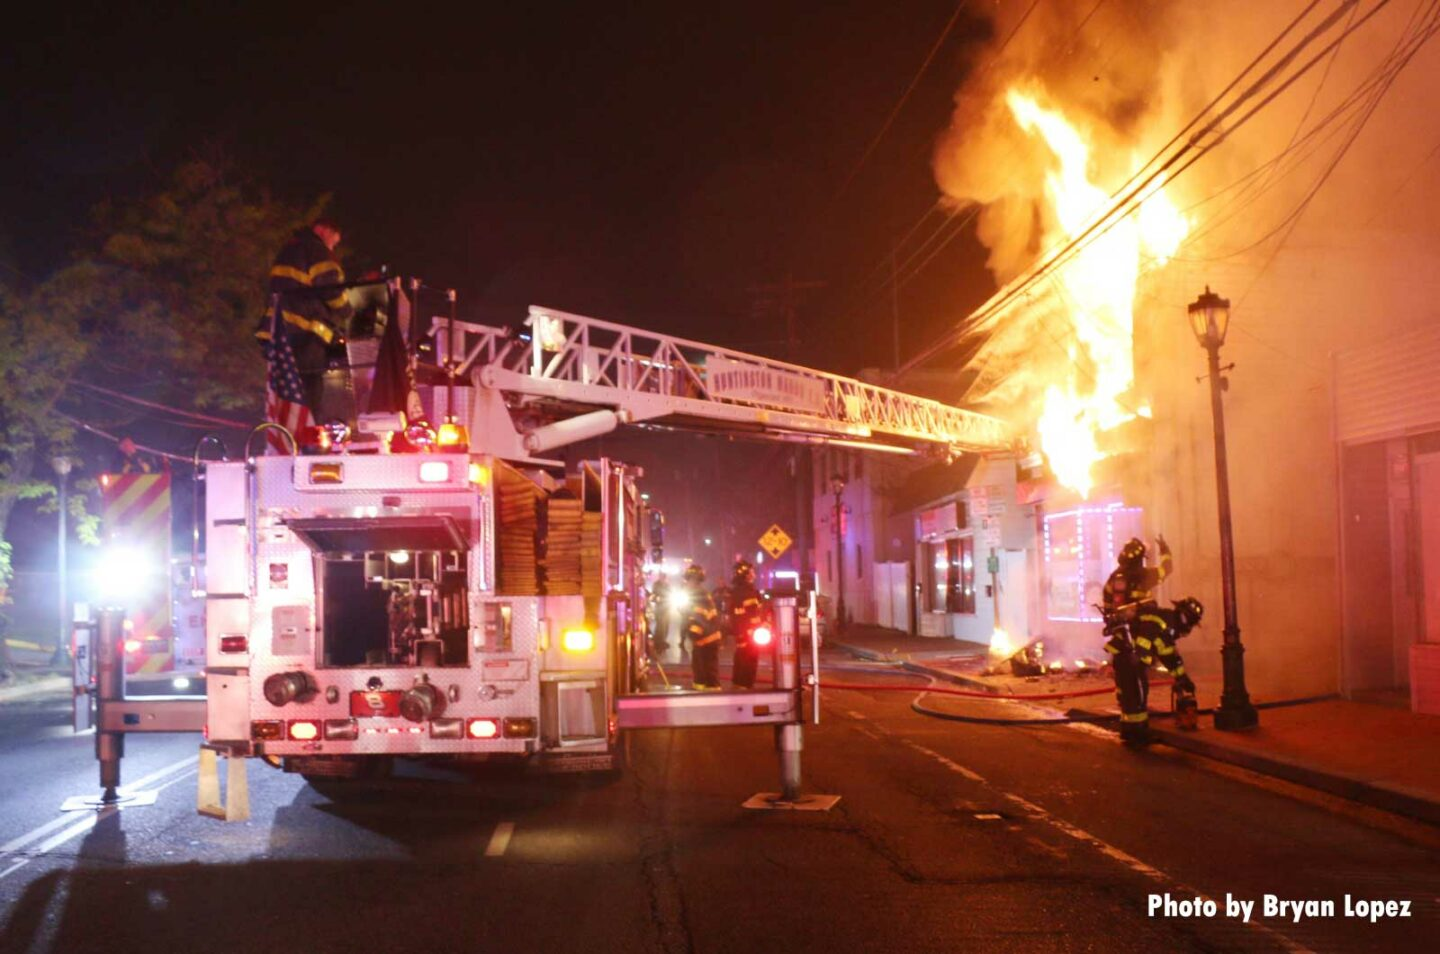 Aerial device extended toward burning building with firefighters working and visible flames